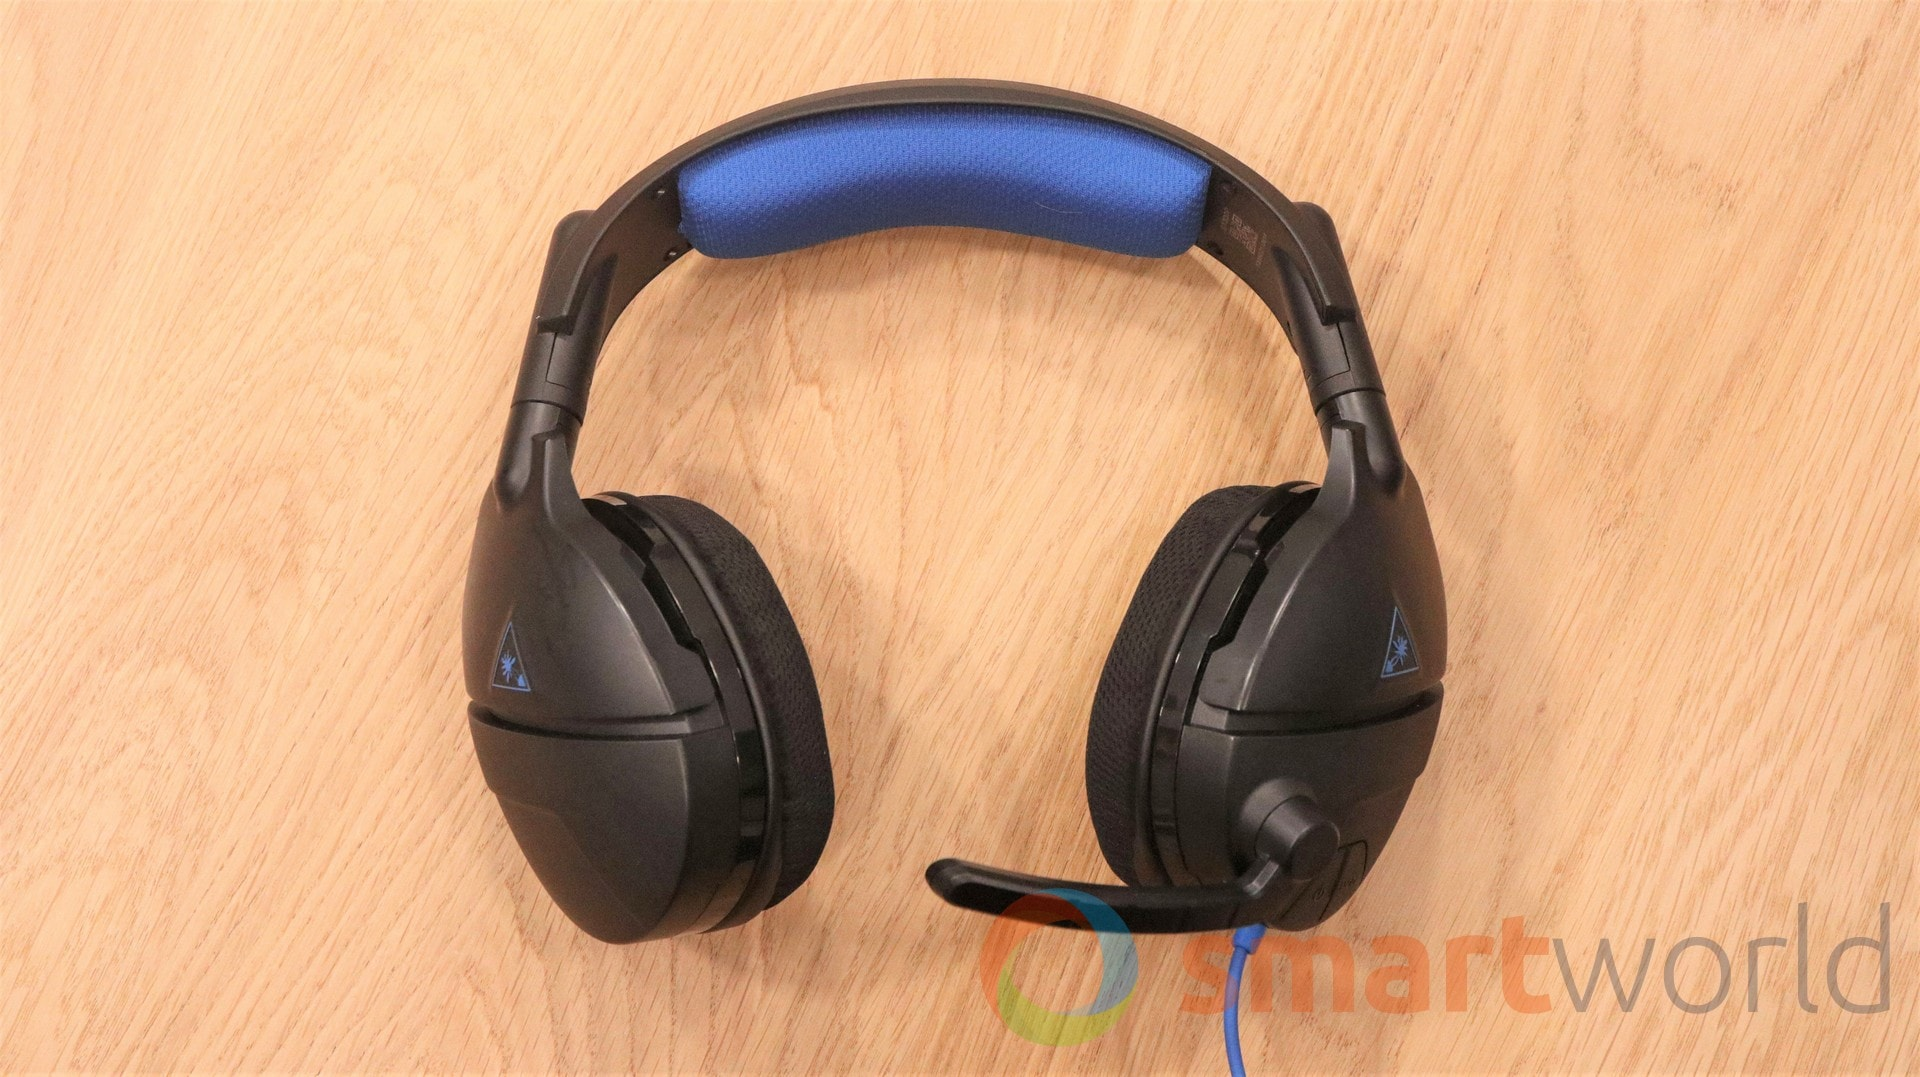 Recensione Turtle Beach Stealth 300 panoramica (3)